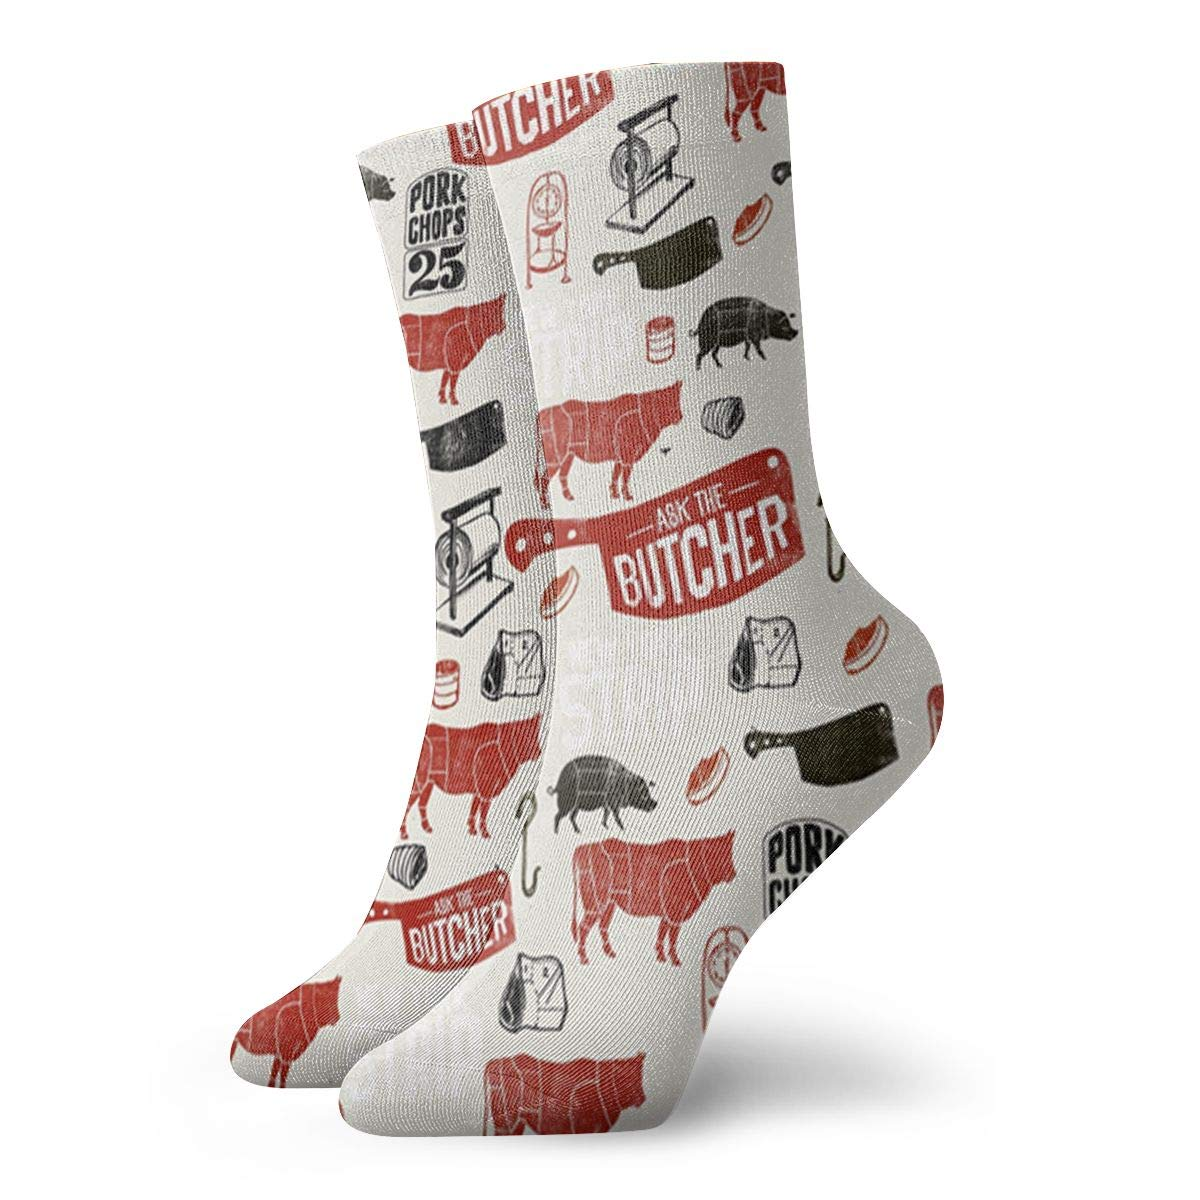 Meat Butcher Pattern Unisex Funny Casual Crew Socks Athletic Socks For Boys Girls Kids Teenagers